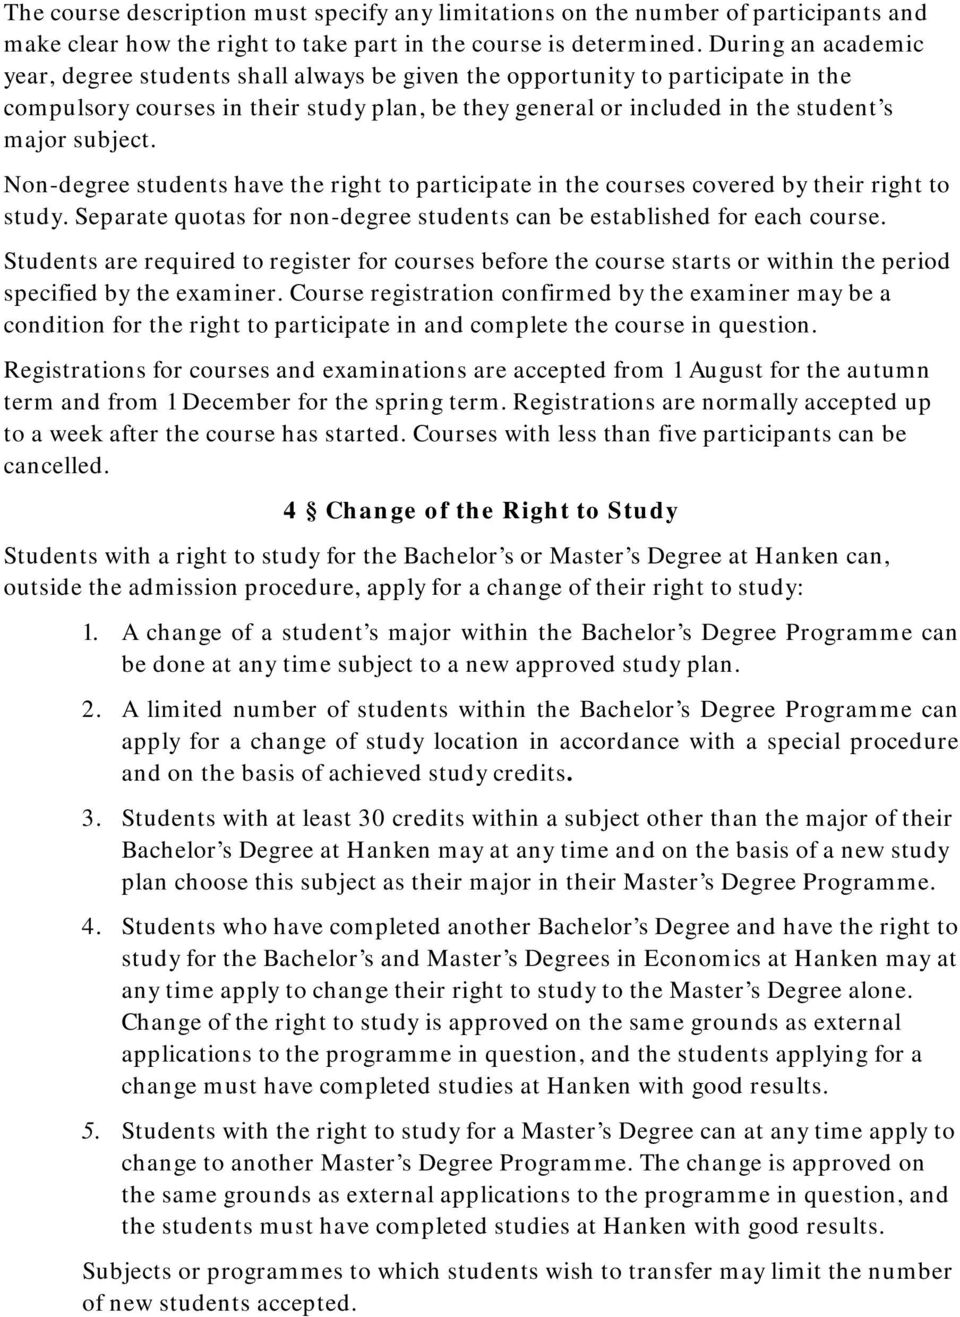 Non-degree students have the right to participate in the courses covered by their right to study. Separate quotas for non-degree students can be established for each course.